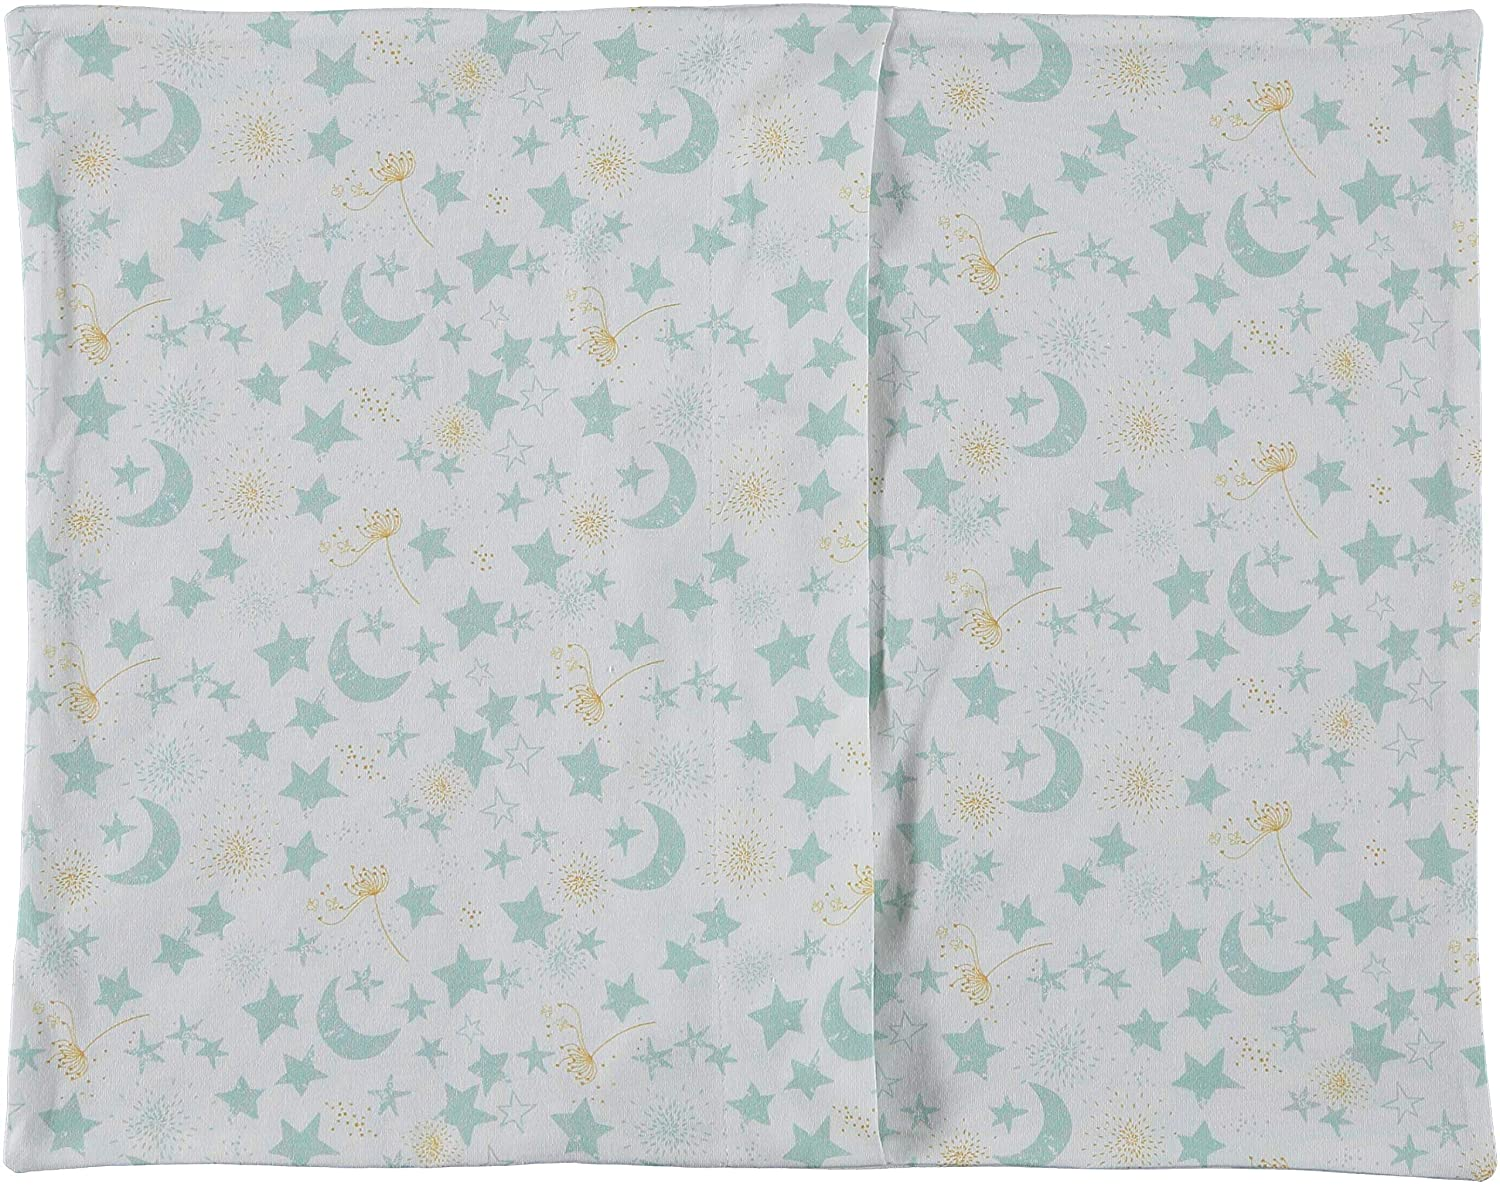 Super Soft Breathable Cute Colorful Smooth Premium Quality GOTS Certified Nursery Crib Bedding Toddler Pillowcase 13 x 18 Stars Soulwell Baby Organic Cotton Pillowcase